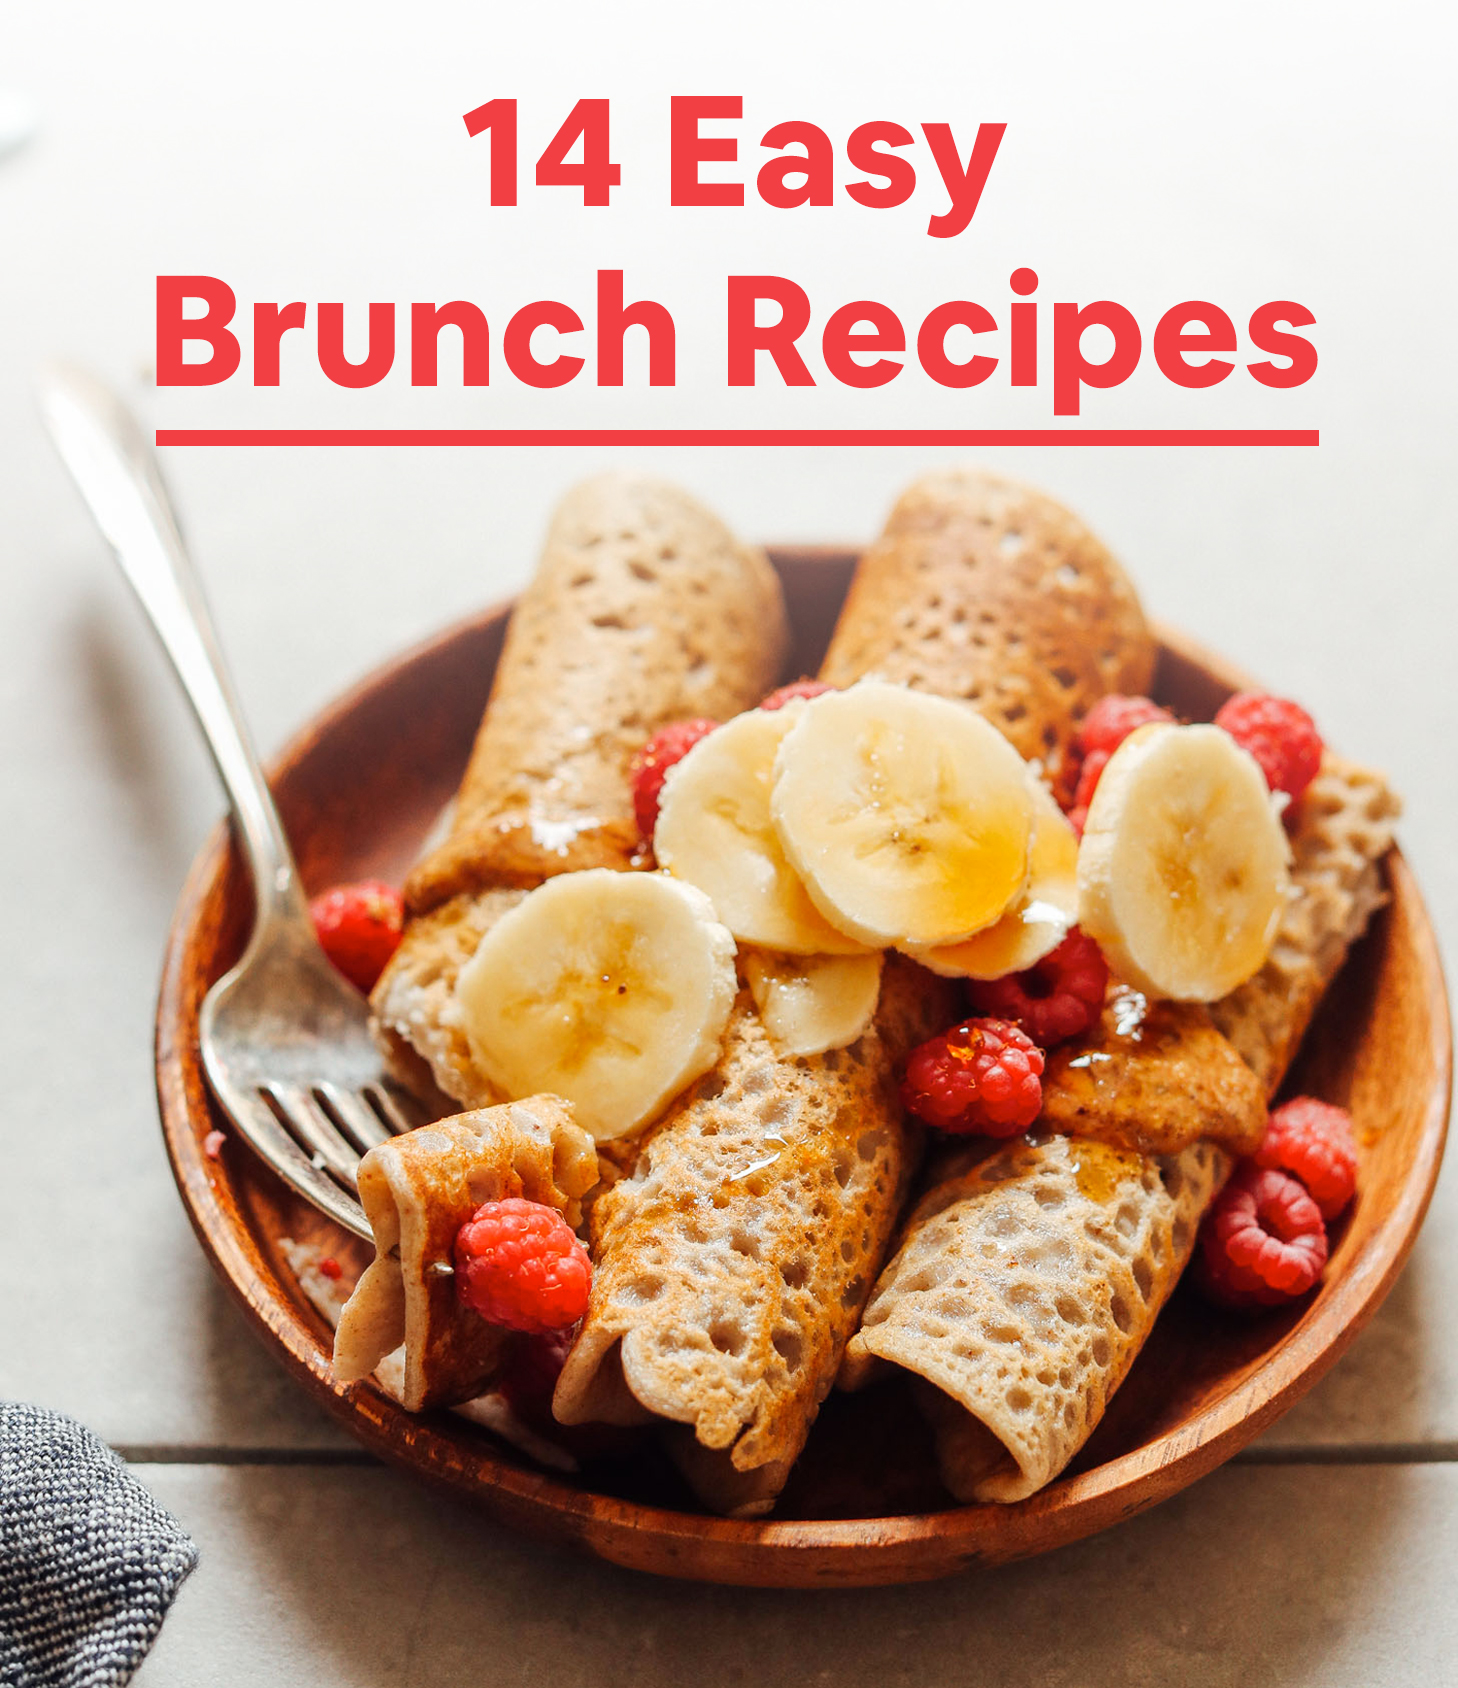 Plate of buckwheat crepes for our 14 Easy Brunch Recipes roundup